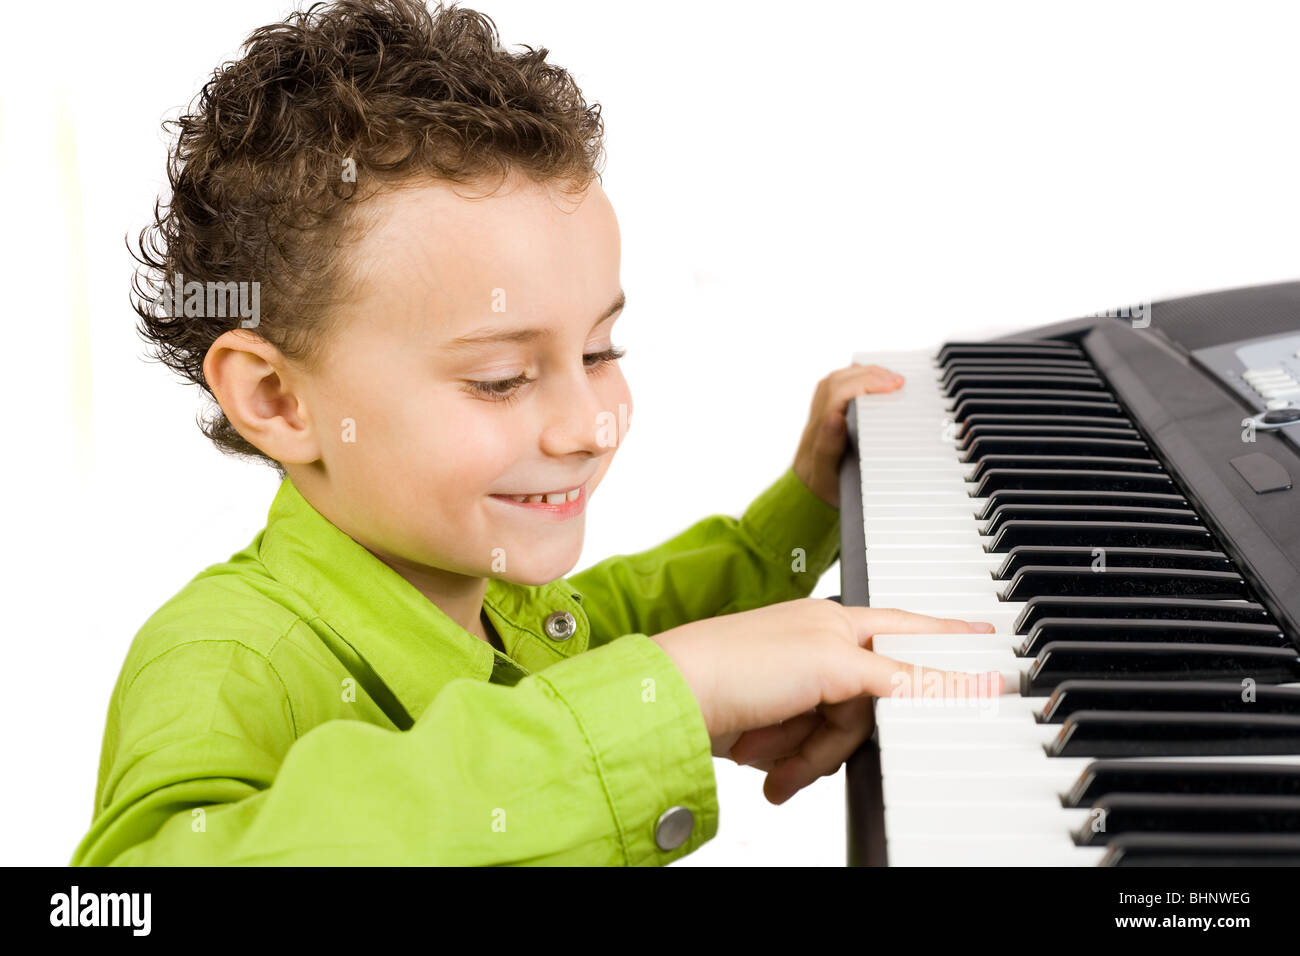 Cute little boy playing synthesizer or piano, isolated on white background - Stock Image